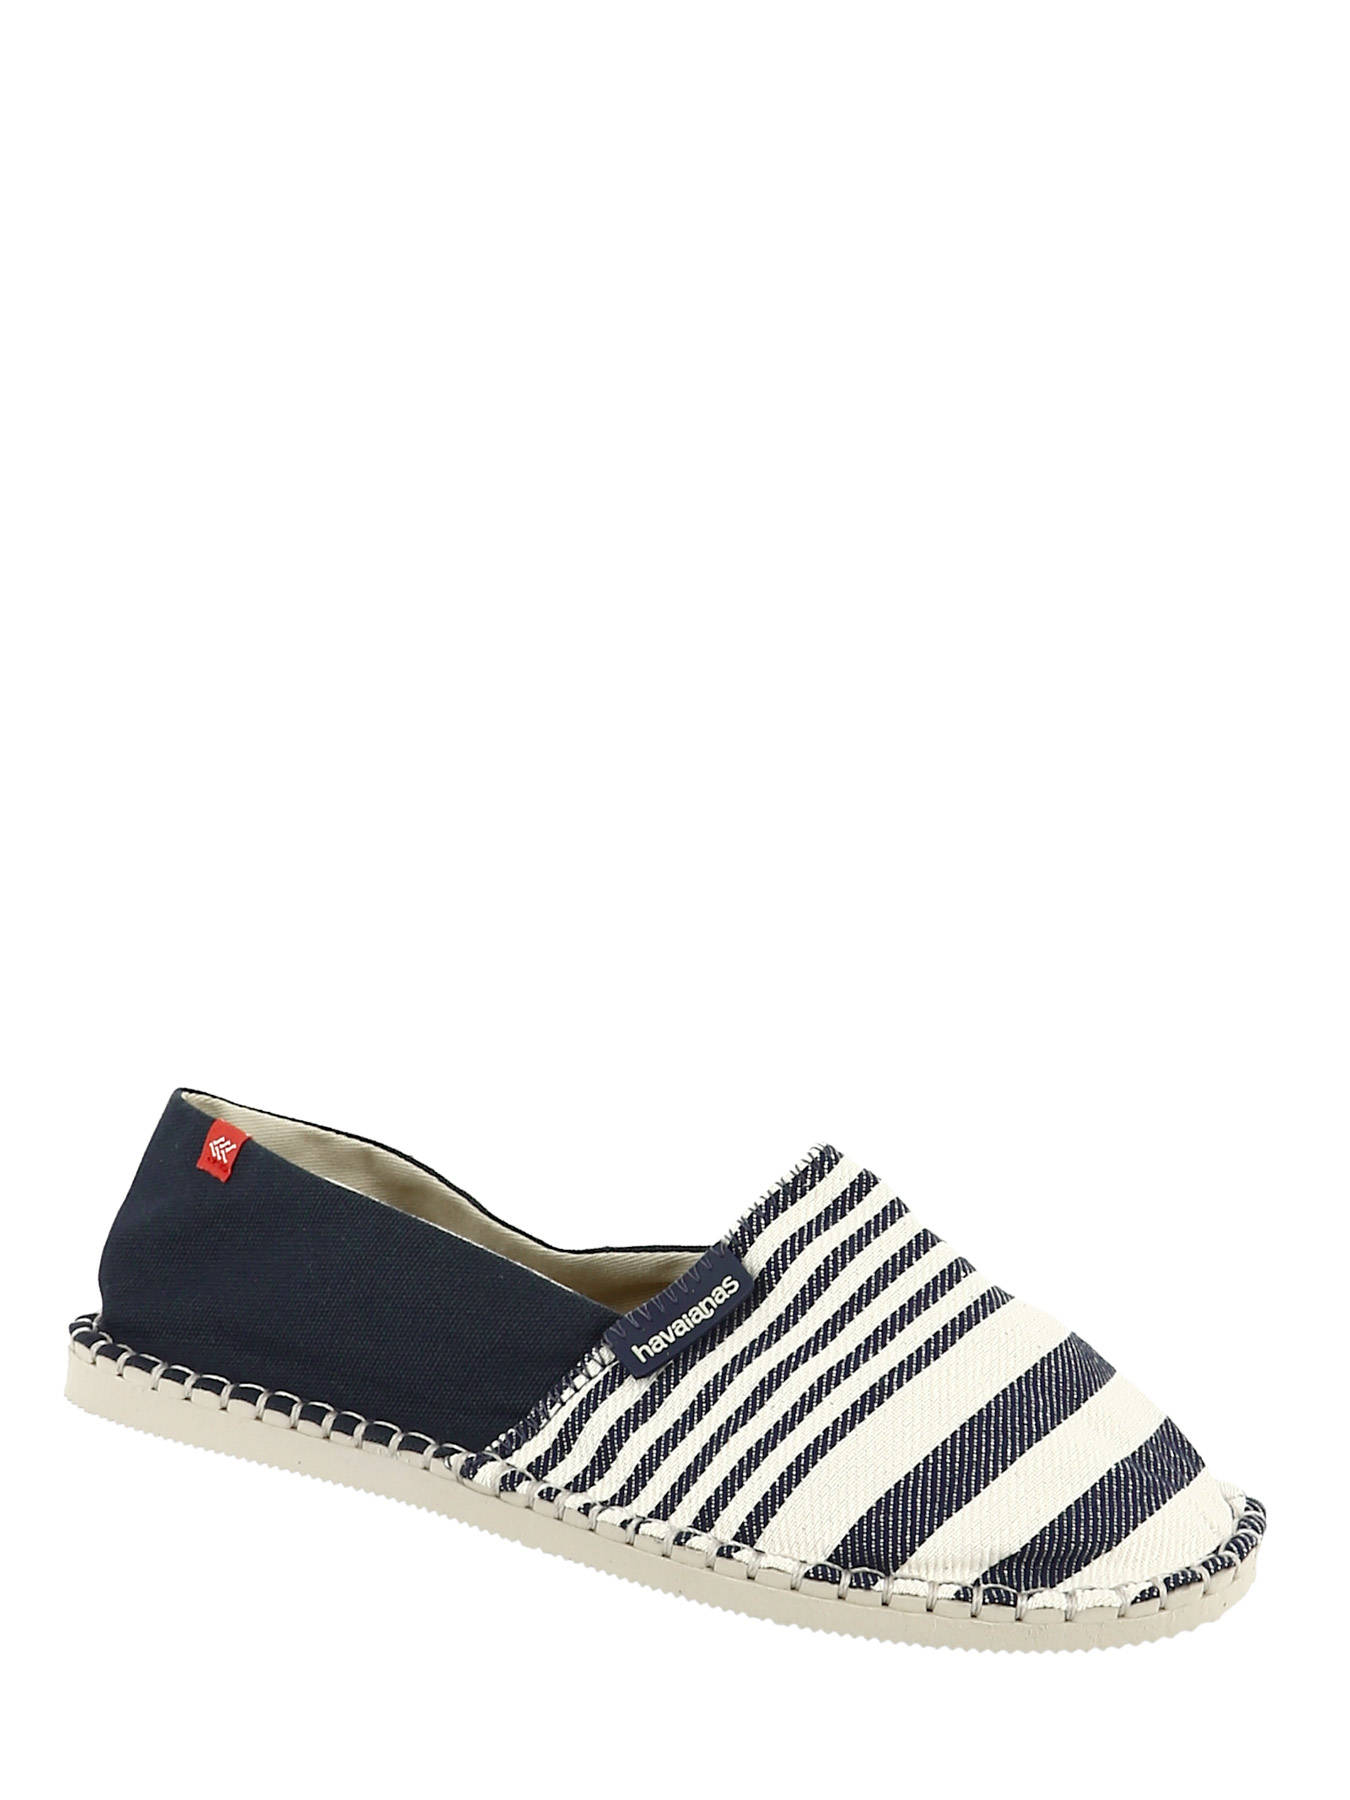 271633ee6b87b Havaianas Espadrilles OR CLASSIC II.F - free shipping available